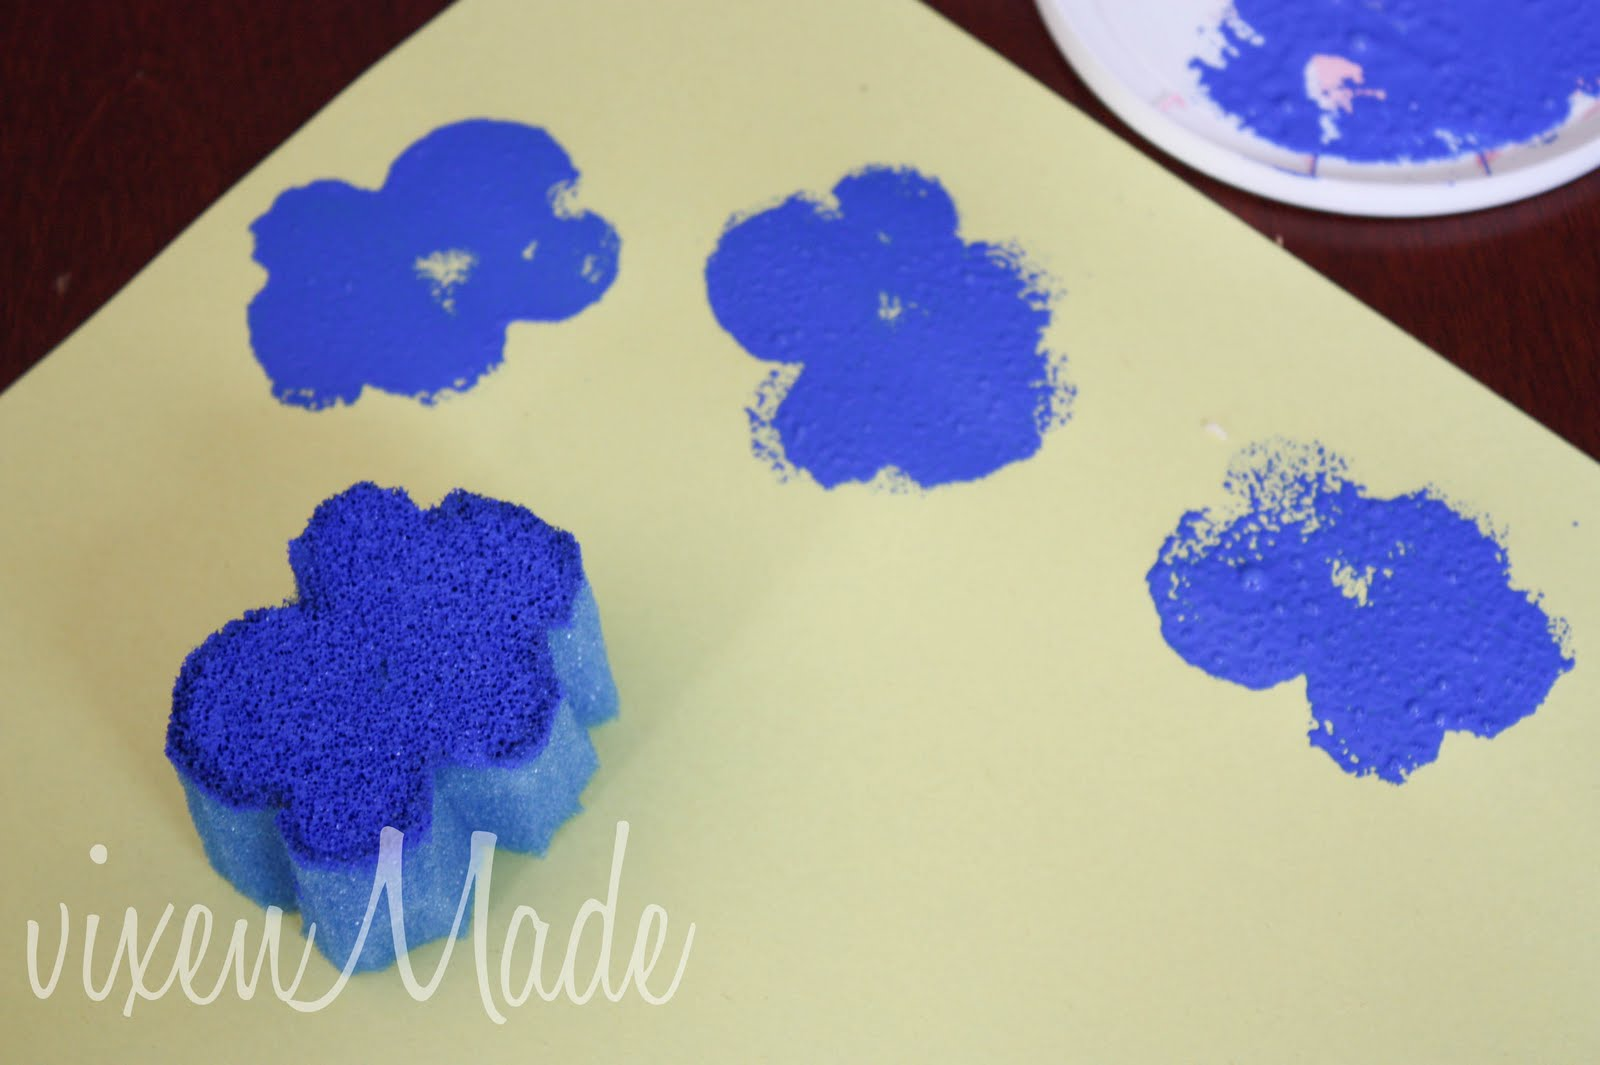 The Sponge Stamps Work Well With Acrylic Paints But You Tend To Use A Lot Of It I Would Suggest Watering Out Bit So Dont Waste Too Much Paint